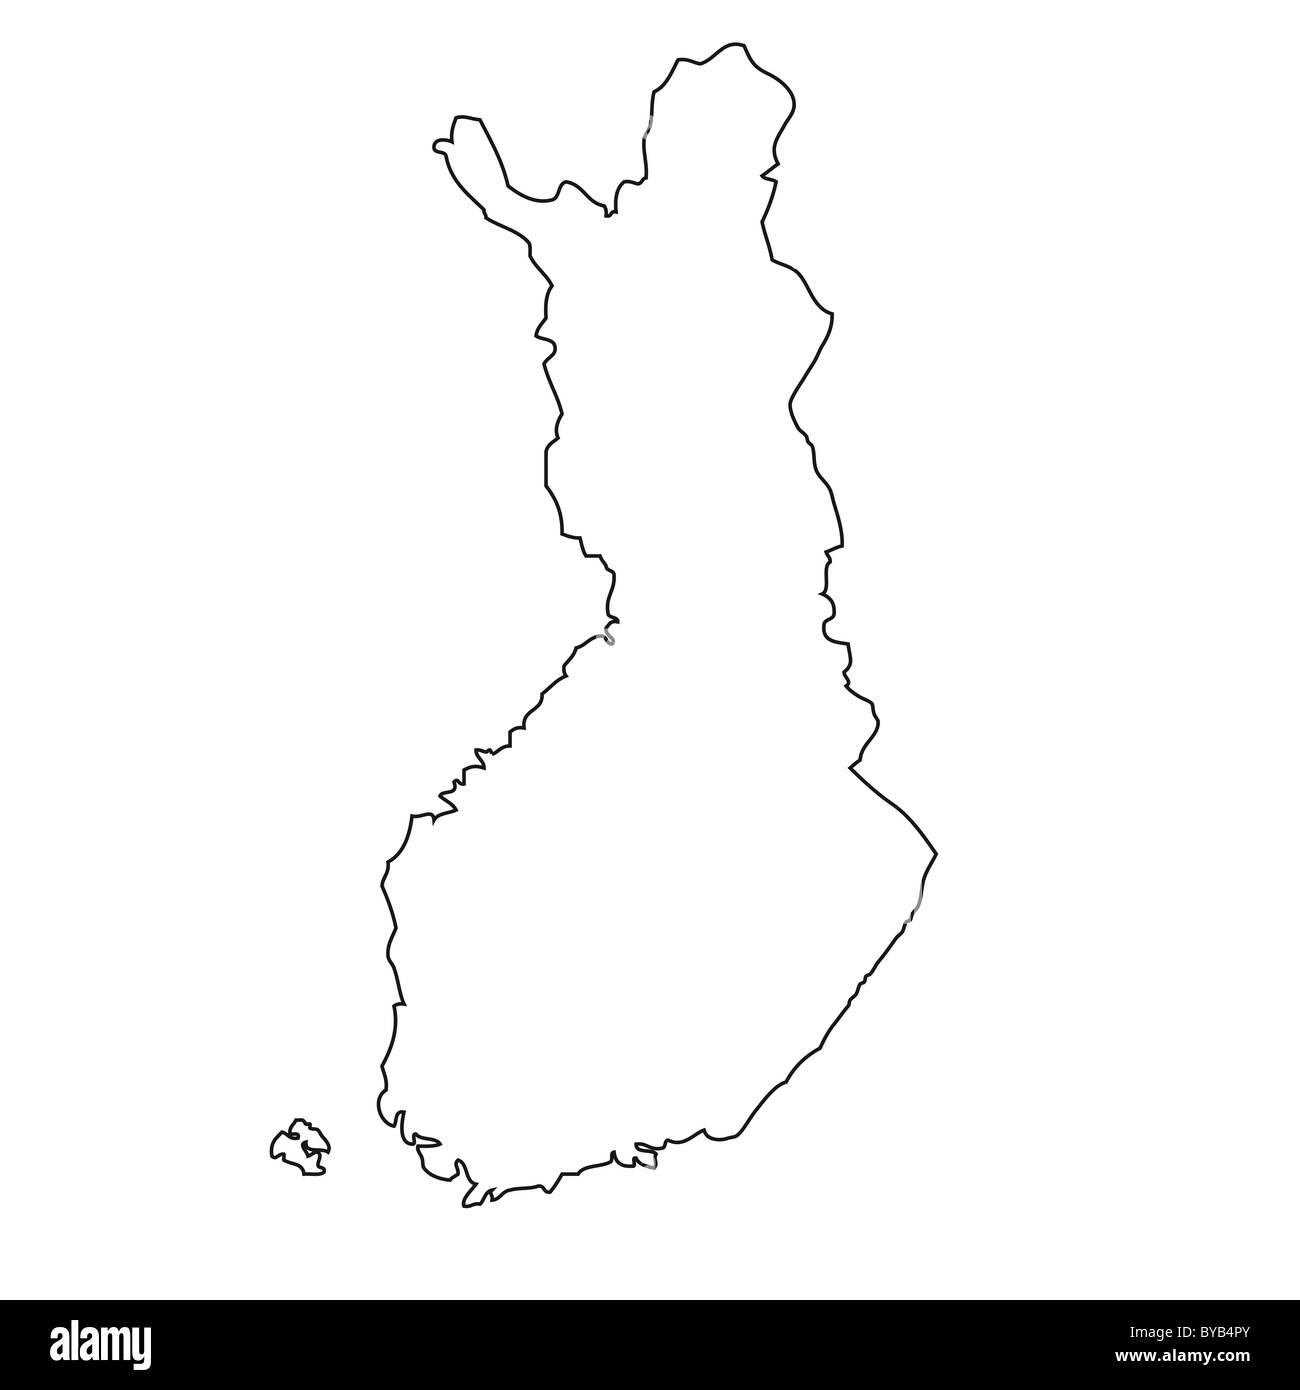 Outline, map of Finland Stock Photo: 34051331 - Alamy